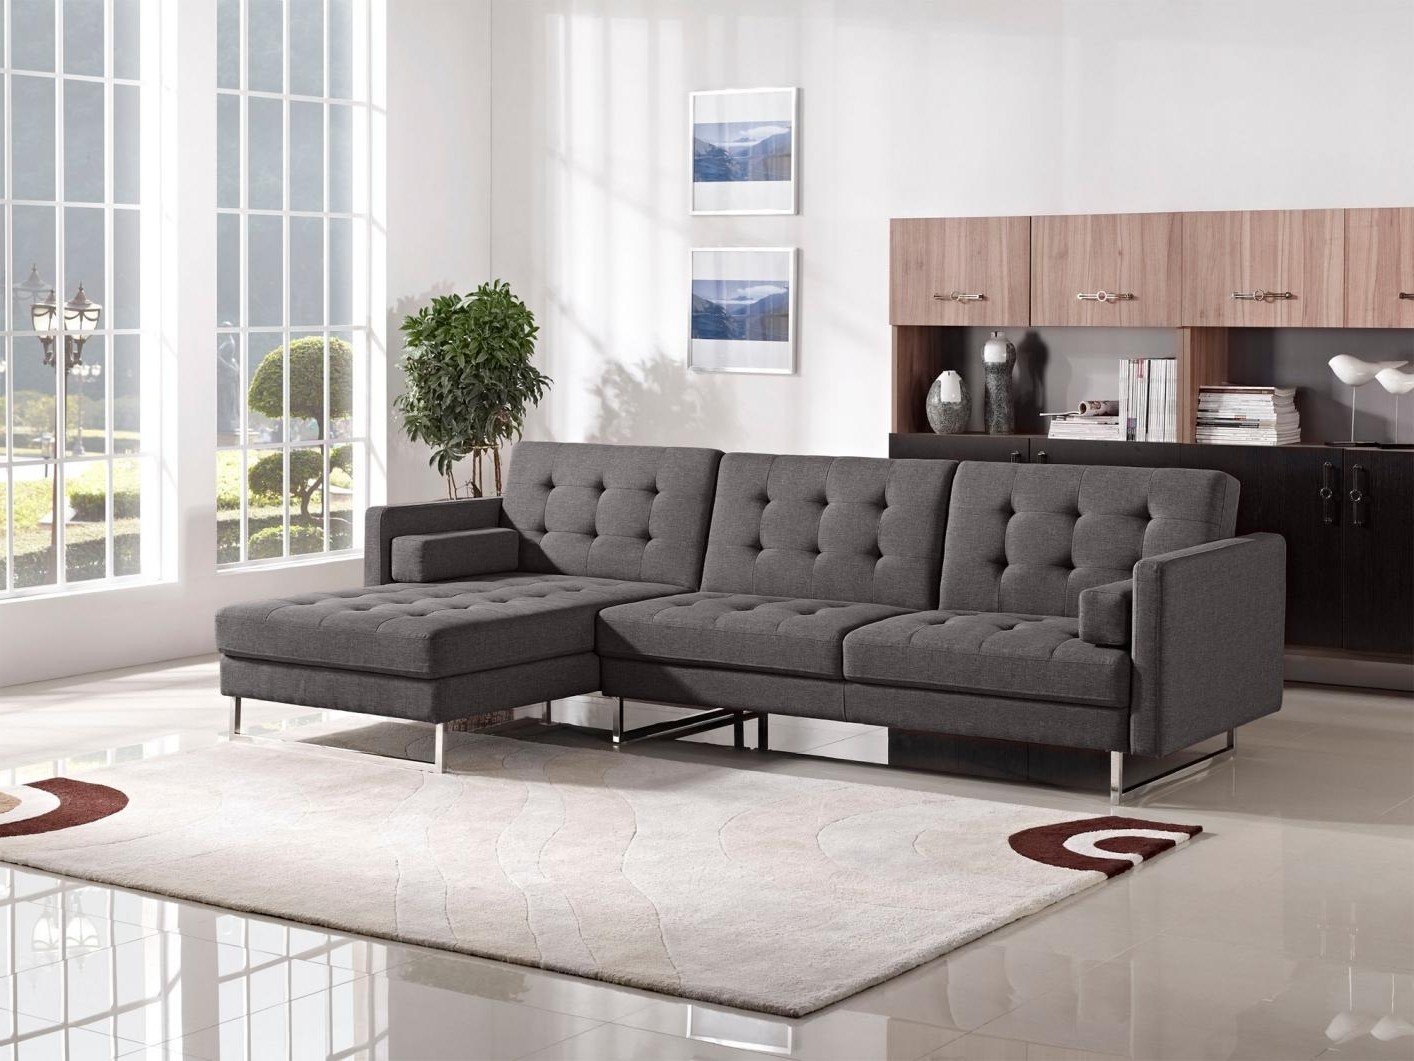 The Bay Sectional Sofas With Regard To Popular Modern L Shaped White Leather Sectional Sofa Bed Chrome Metal Base (Gallery 8 of 20)